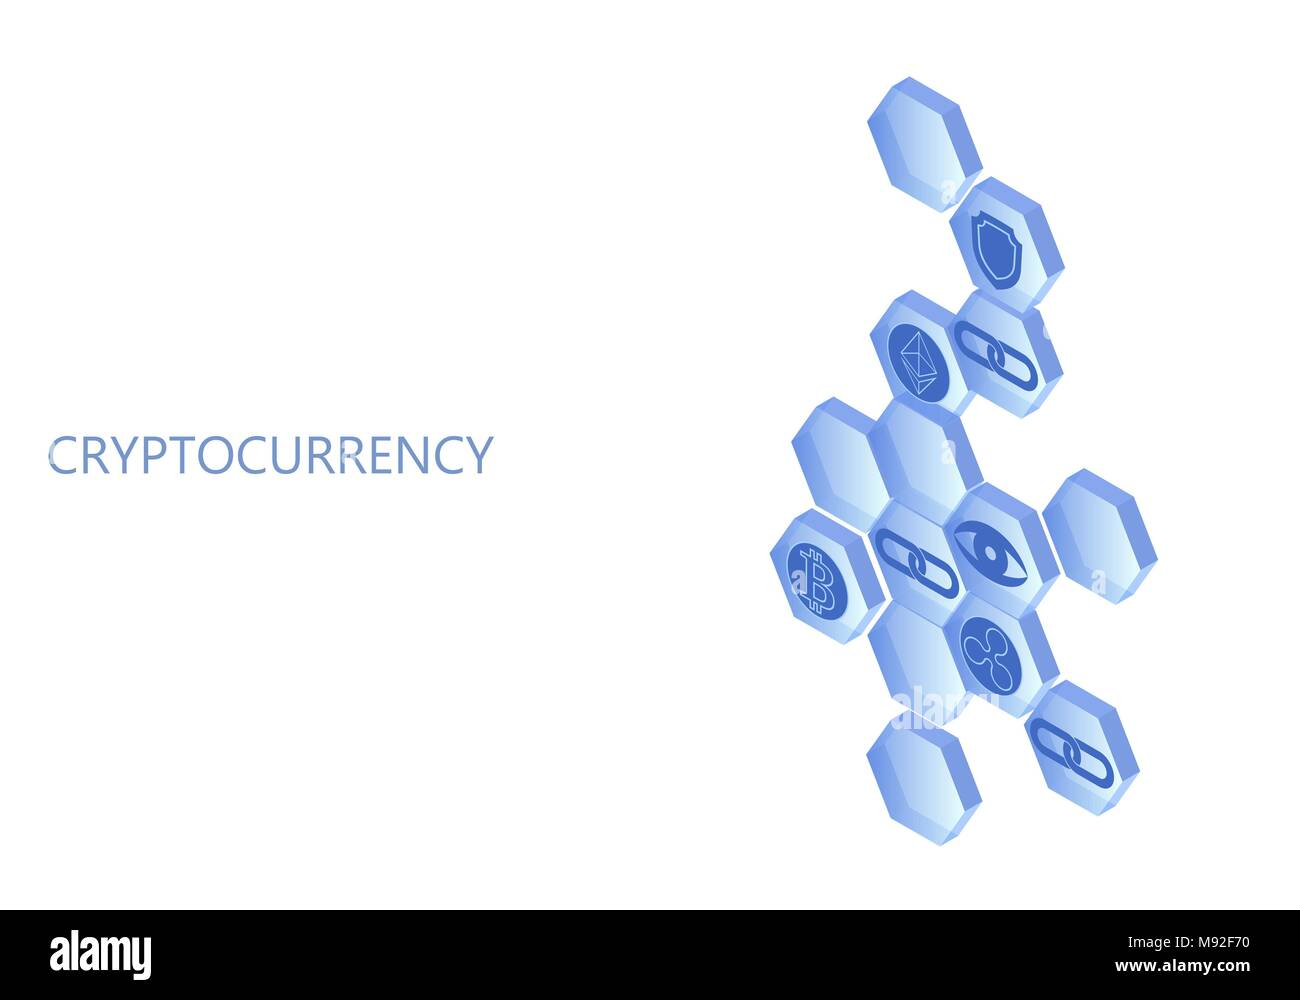 Blockchain blue isometric composition. Flat glowing hexagon sign safety shield Bitcoin Ethereum Ripple coin cryptocurrency online global 3d payment digital mining vector illustration - Stock Image